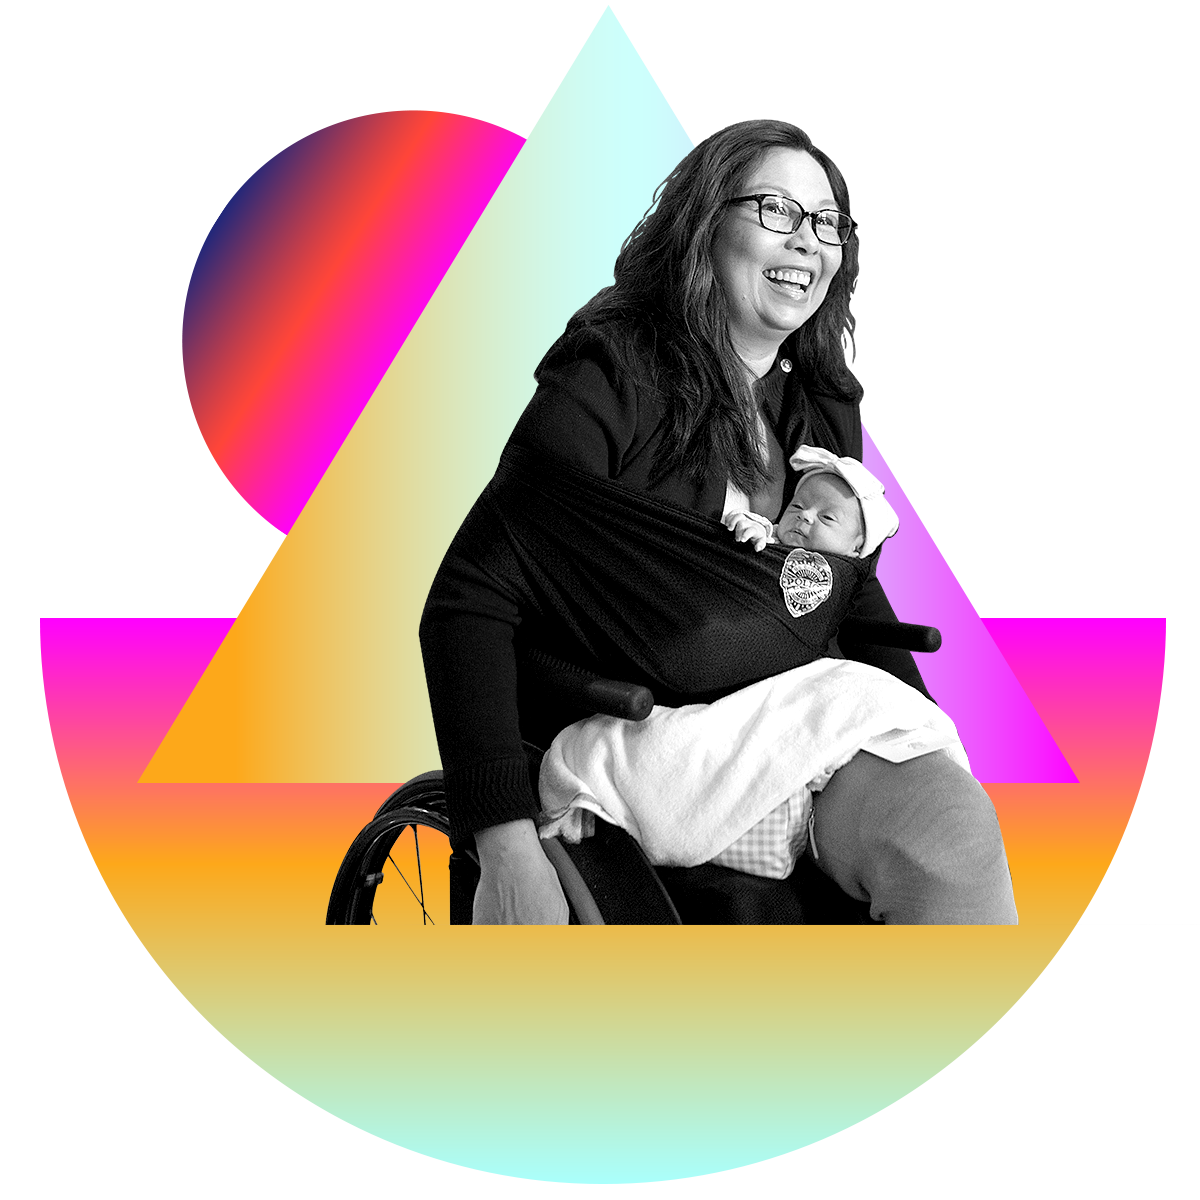 Photo illustration of Tammy Duckworth in black and white surrounded by colored gradients